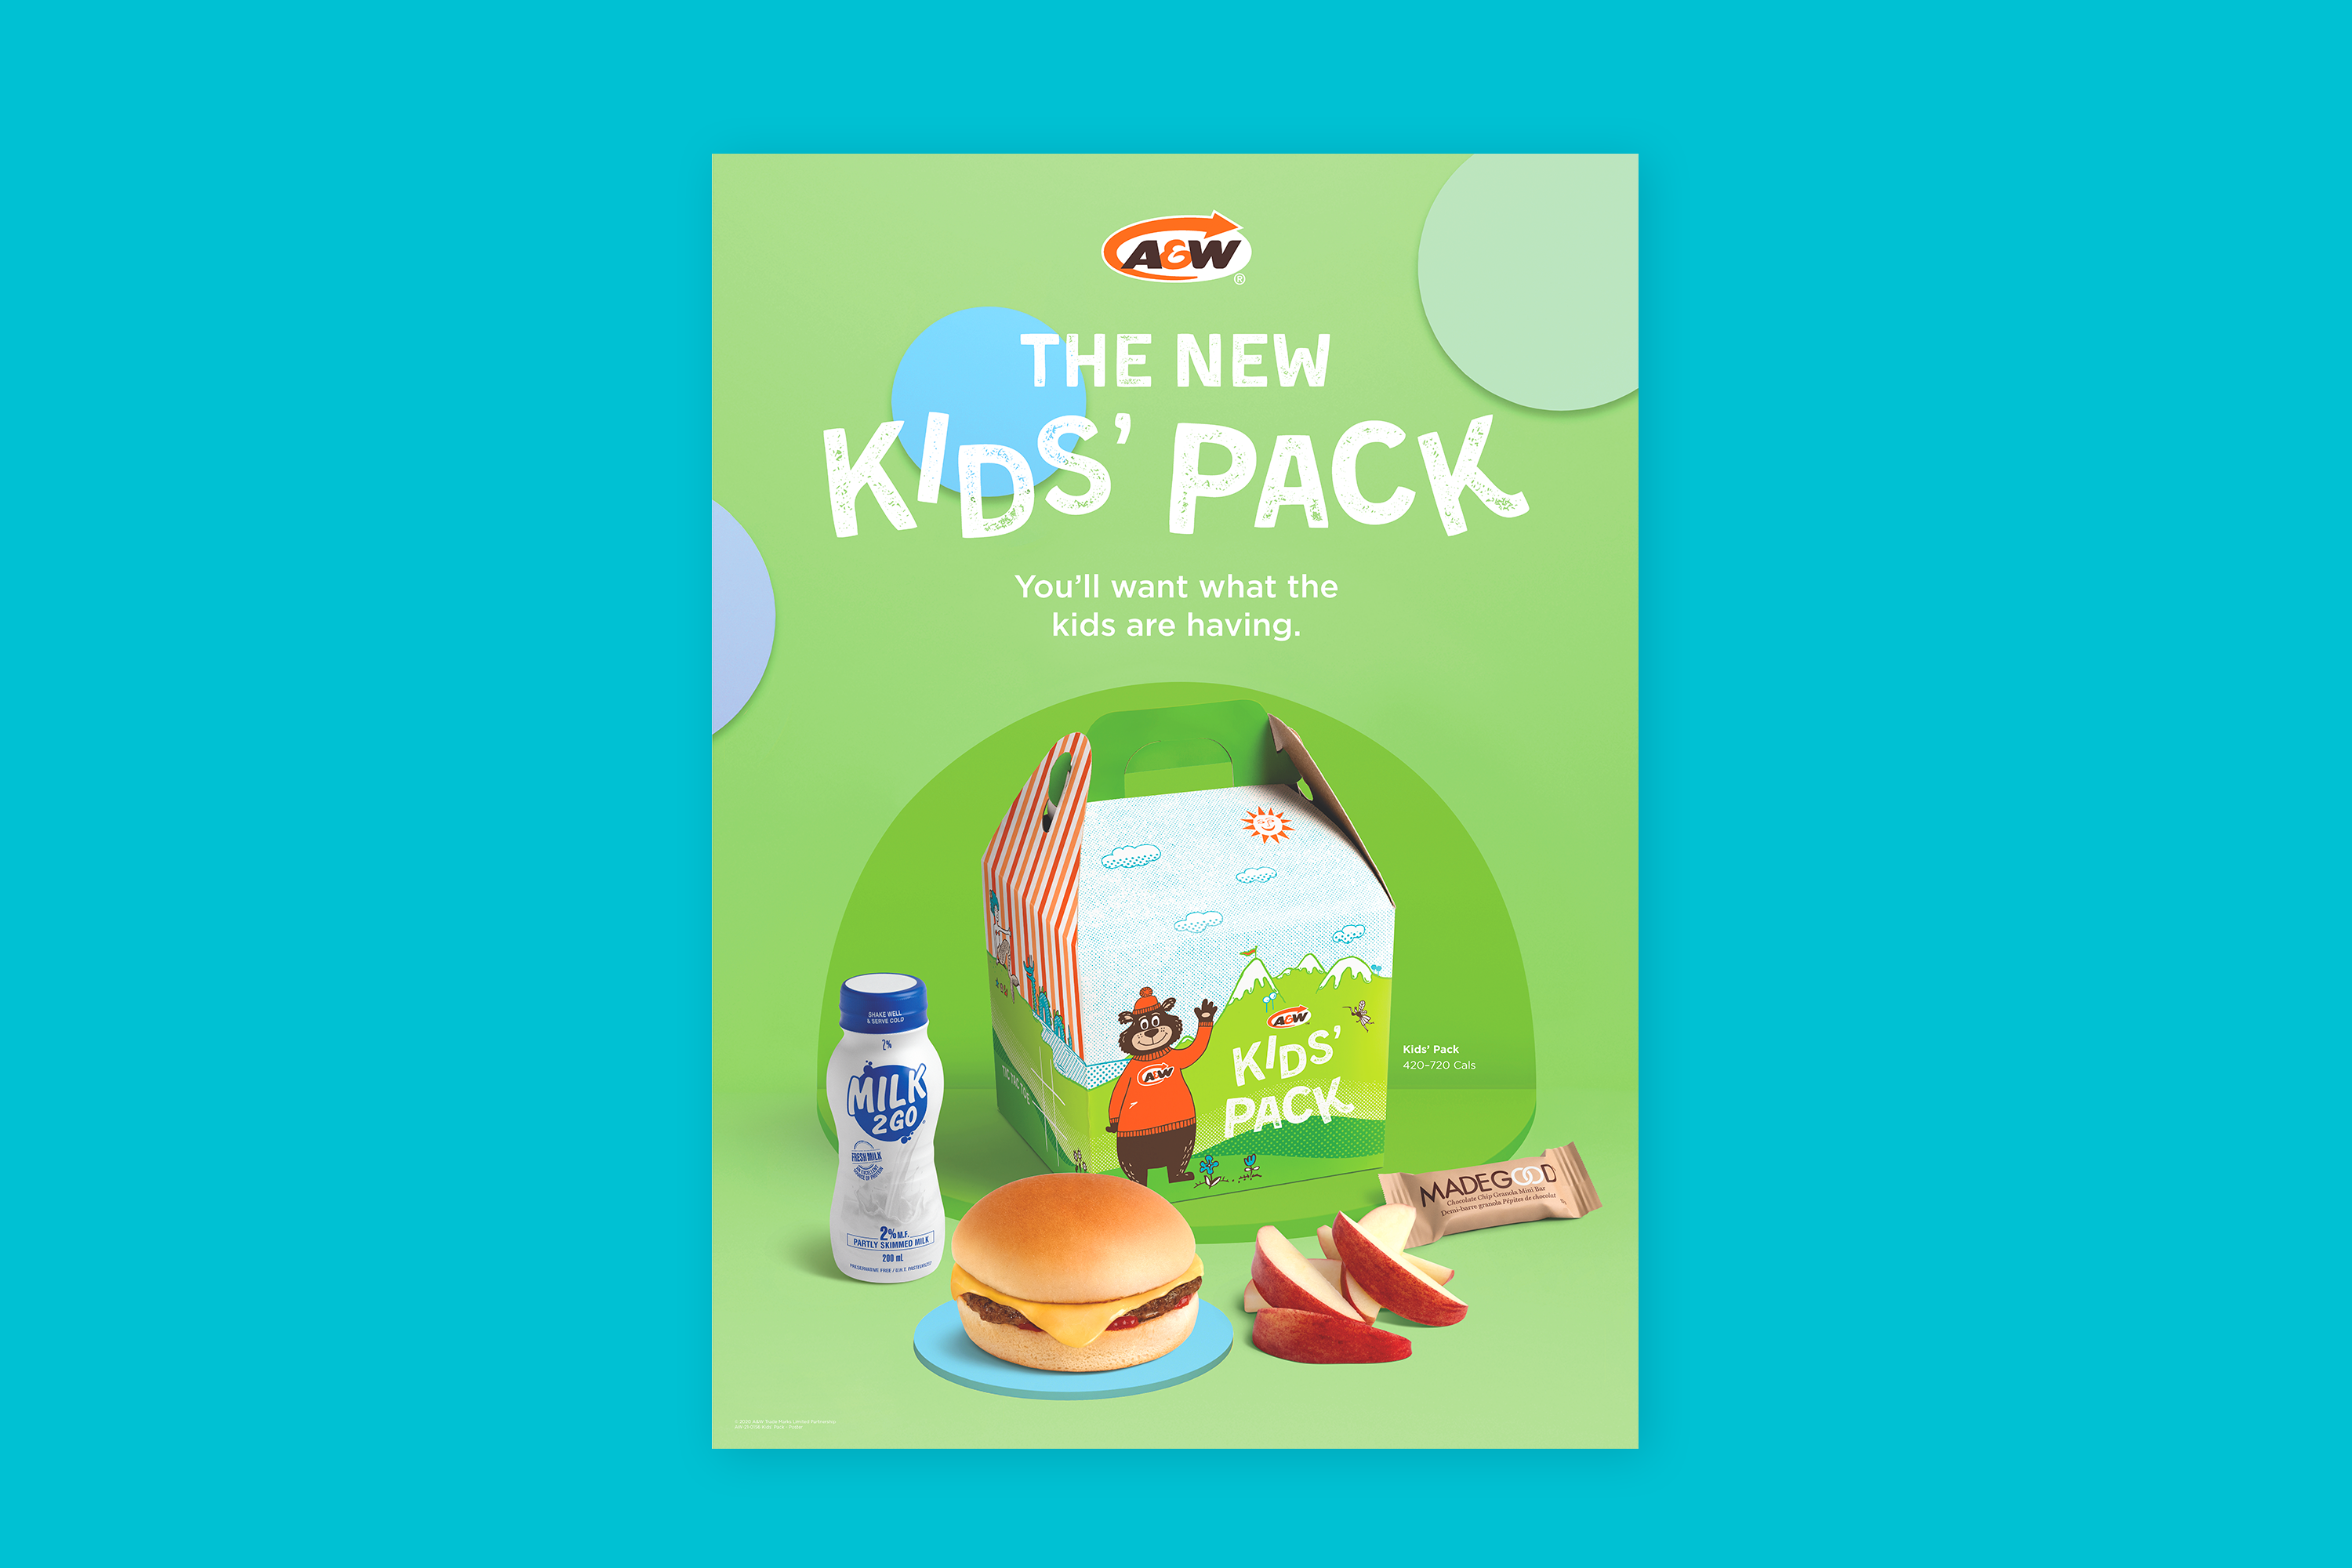 A&W Kids Pack Poster